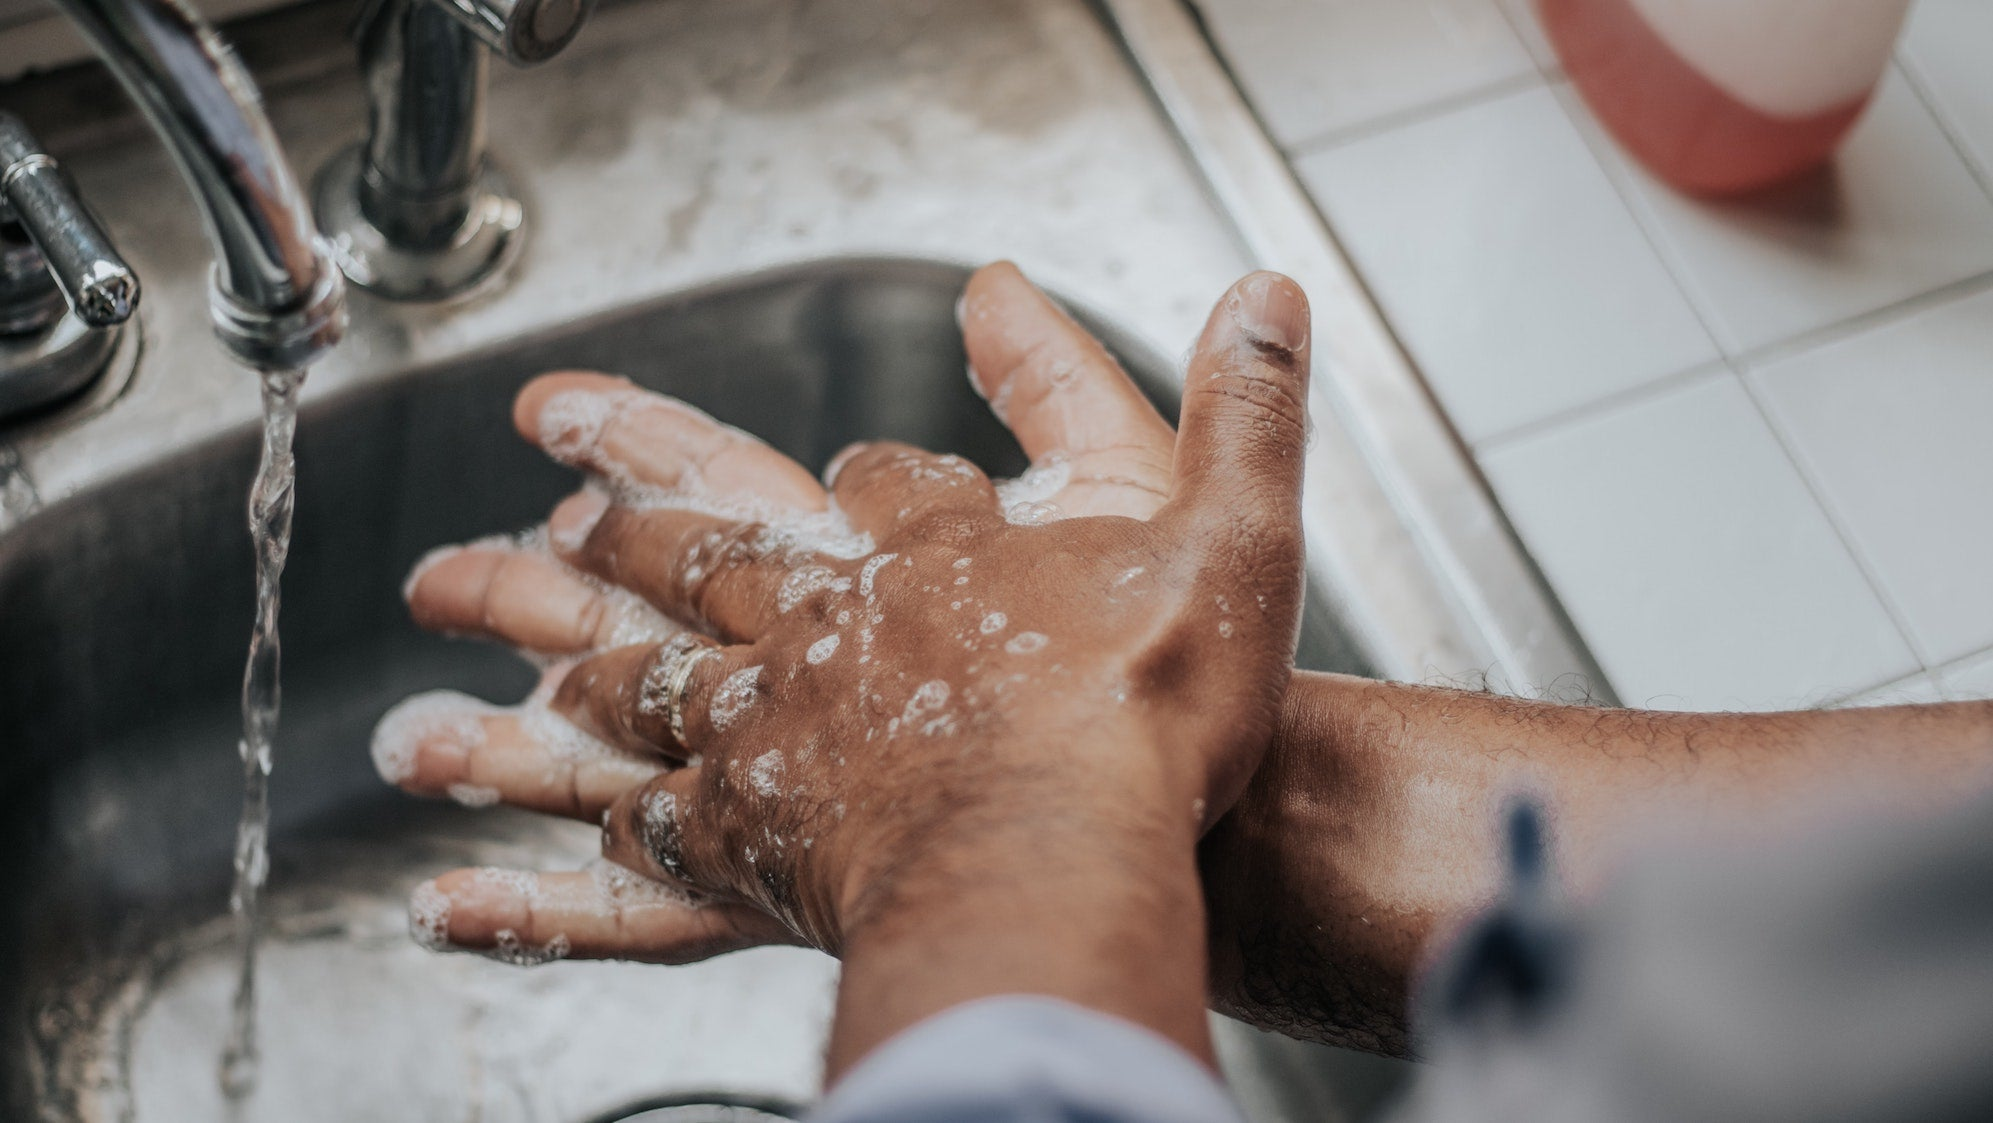 Washing your hands | When and how you should wash your hands?